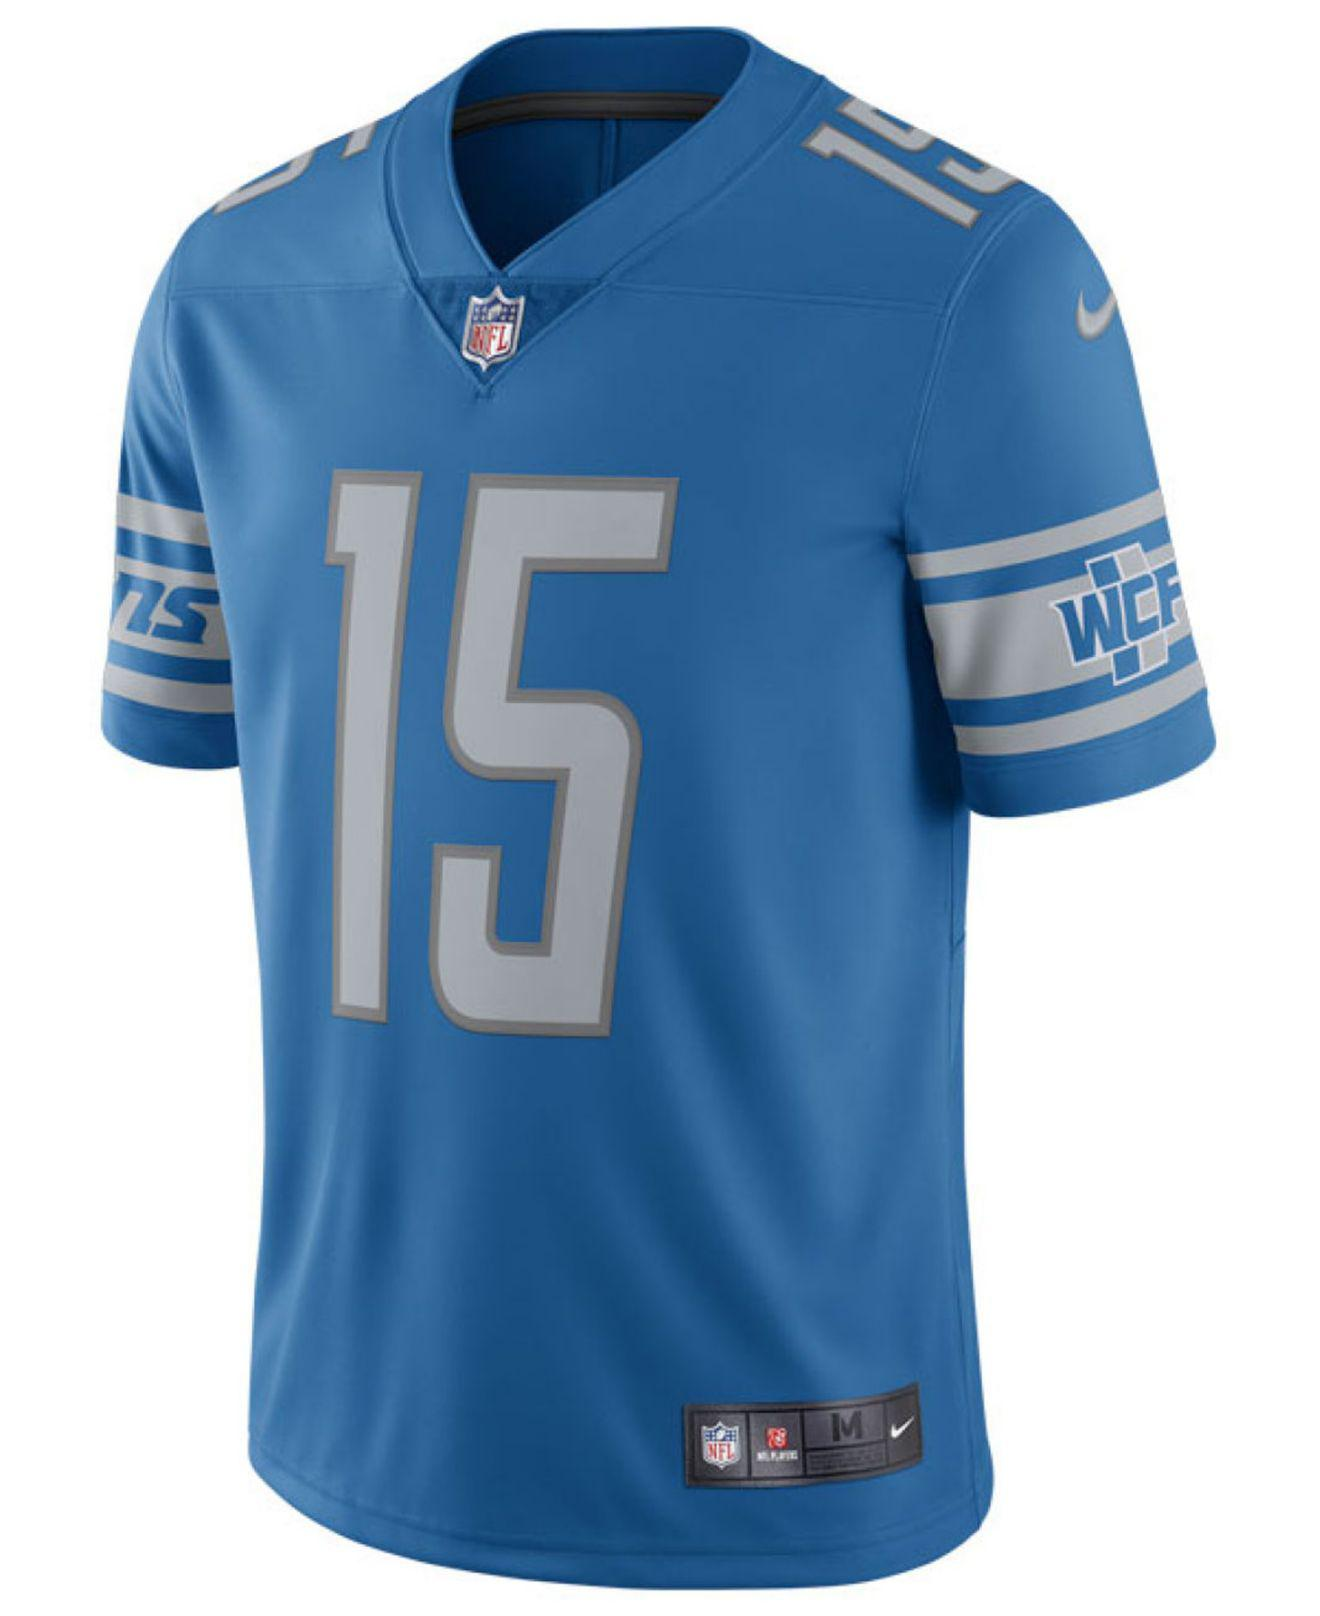 Lyst - Nike Golden Tate Detroit Lions Vapor Untouchable Limited Jersey in  Blue for Men f2952f290